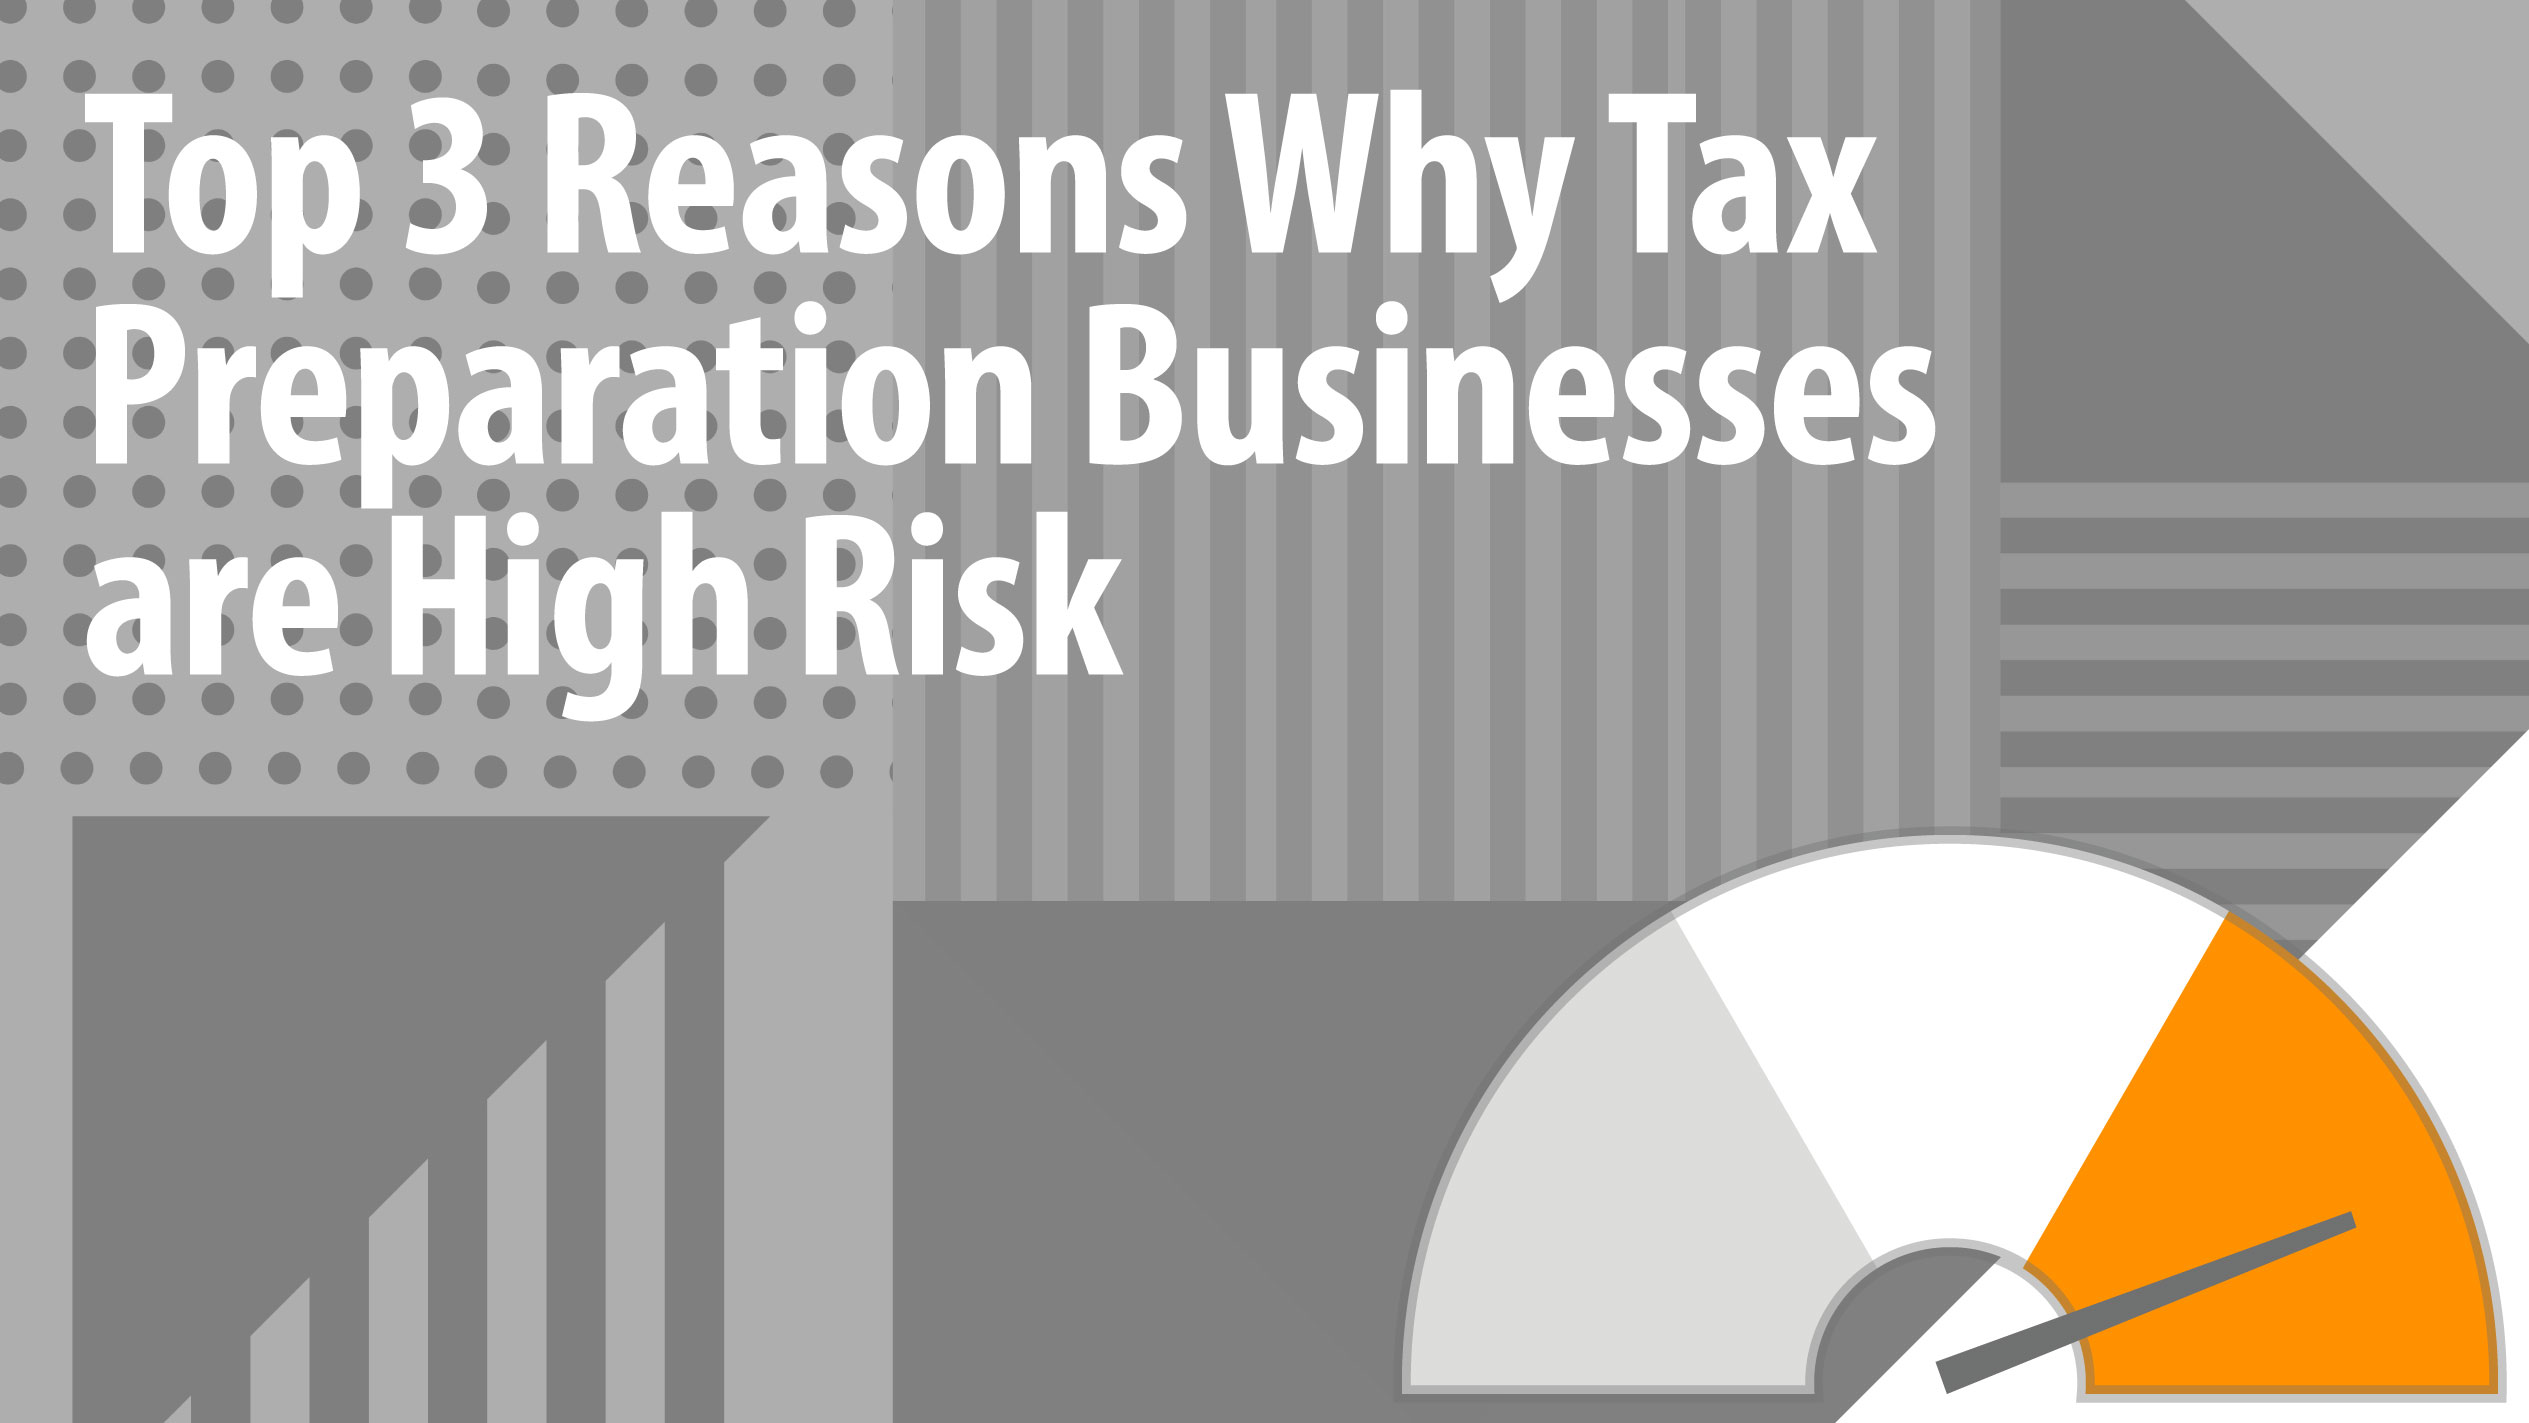 Top 3 Reasons Why Tax Preparation Businesses are High Risk